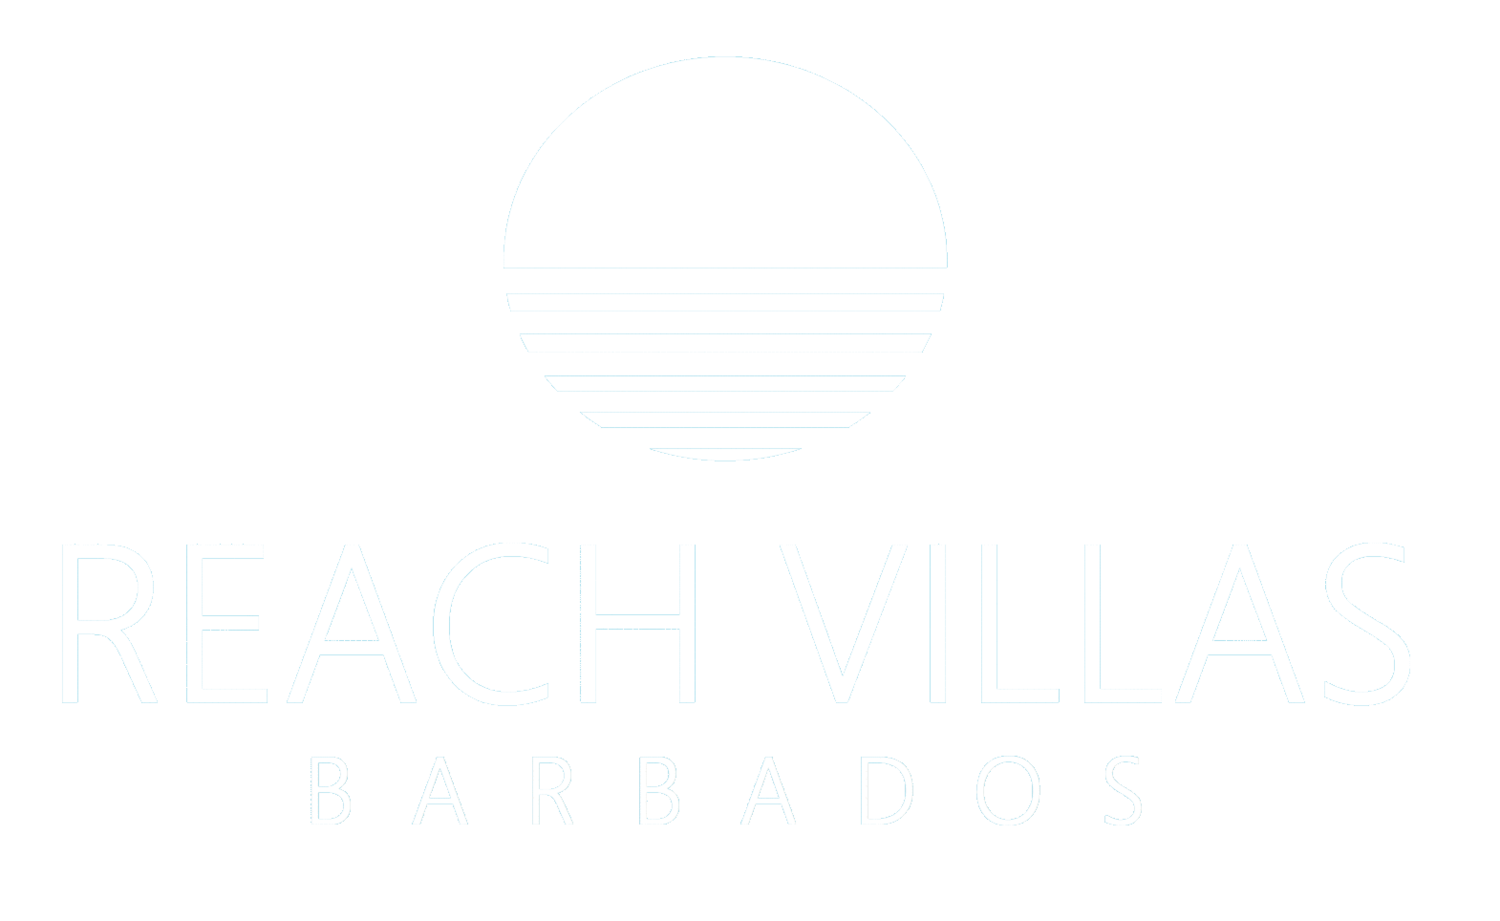 Reach Villas Barbados